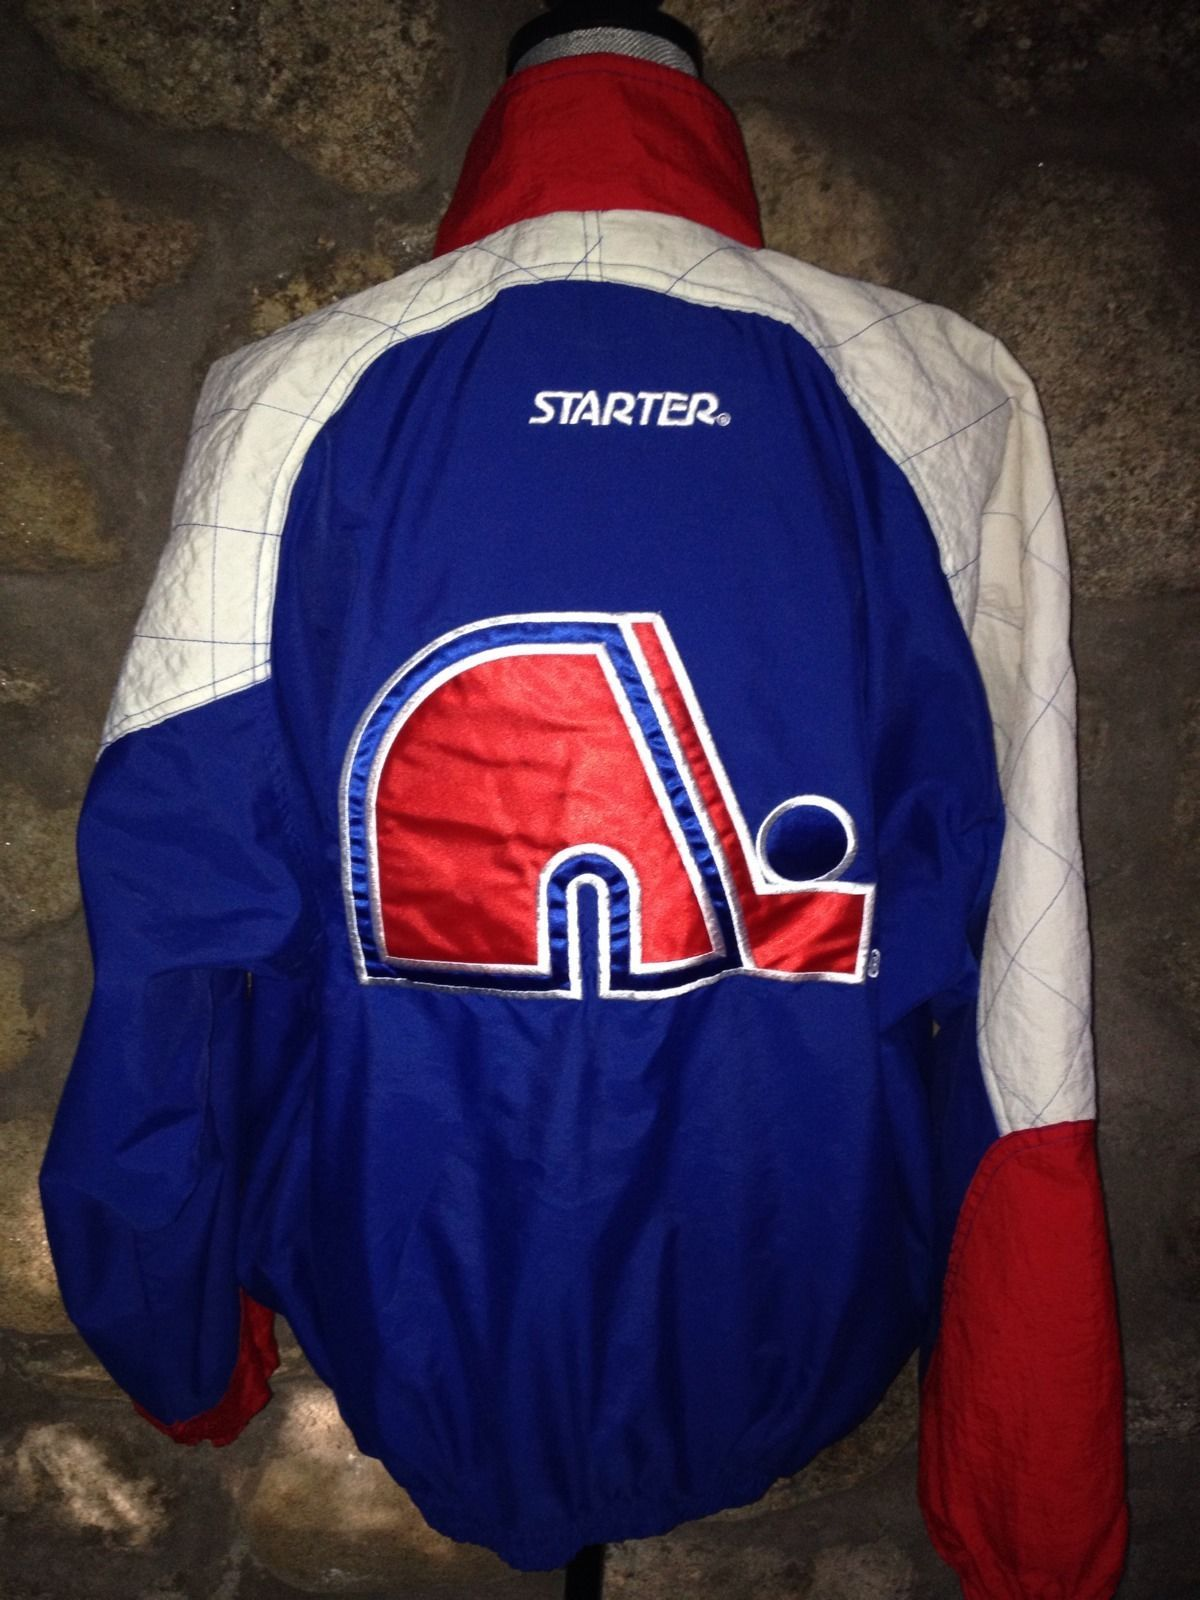 875e9172886 Quebec Nordiques Windbreaker by Starter (not a nice style IMO